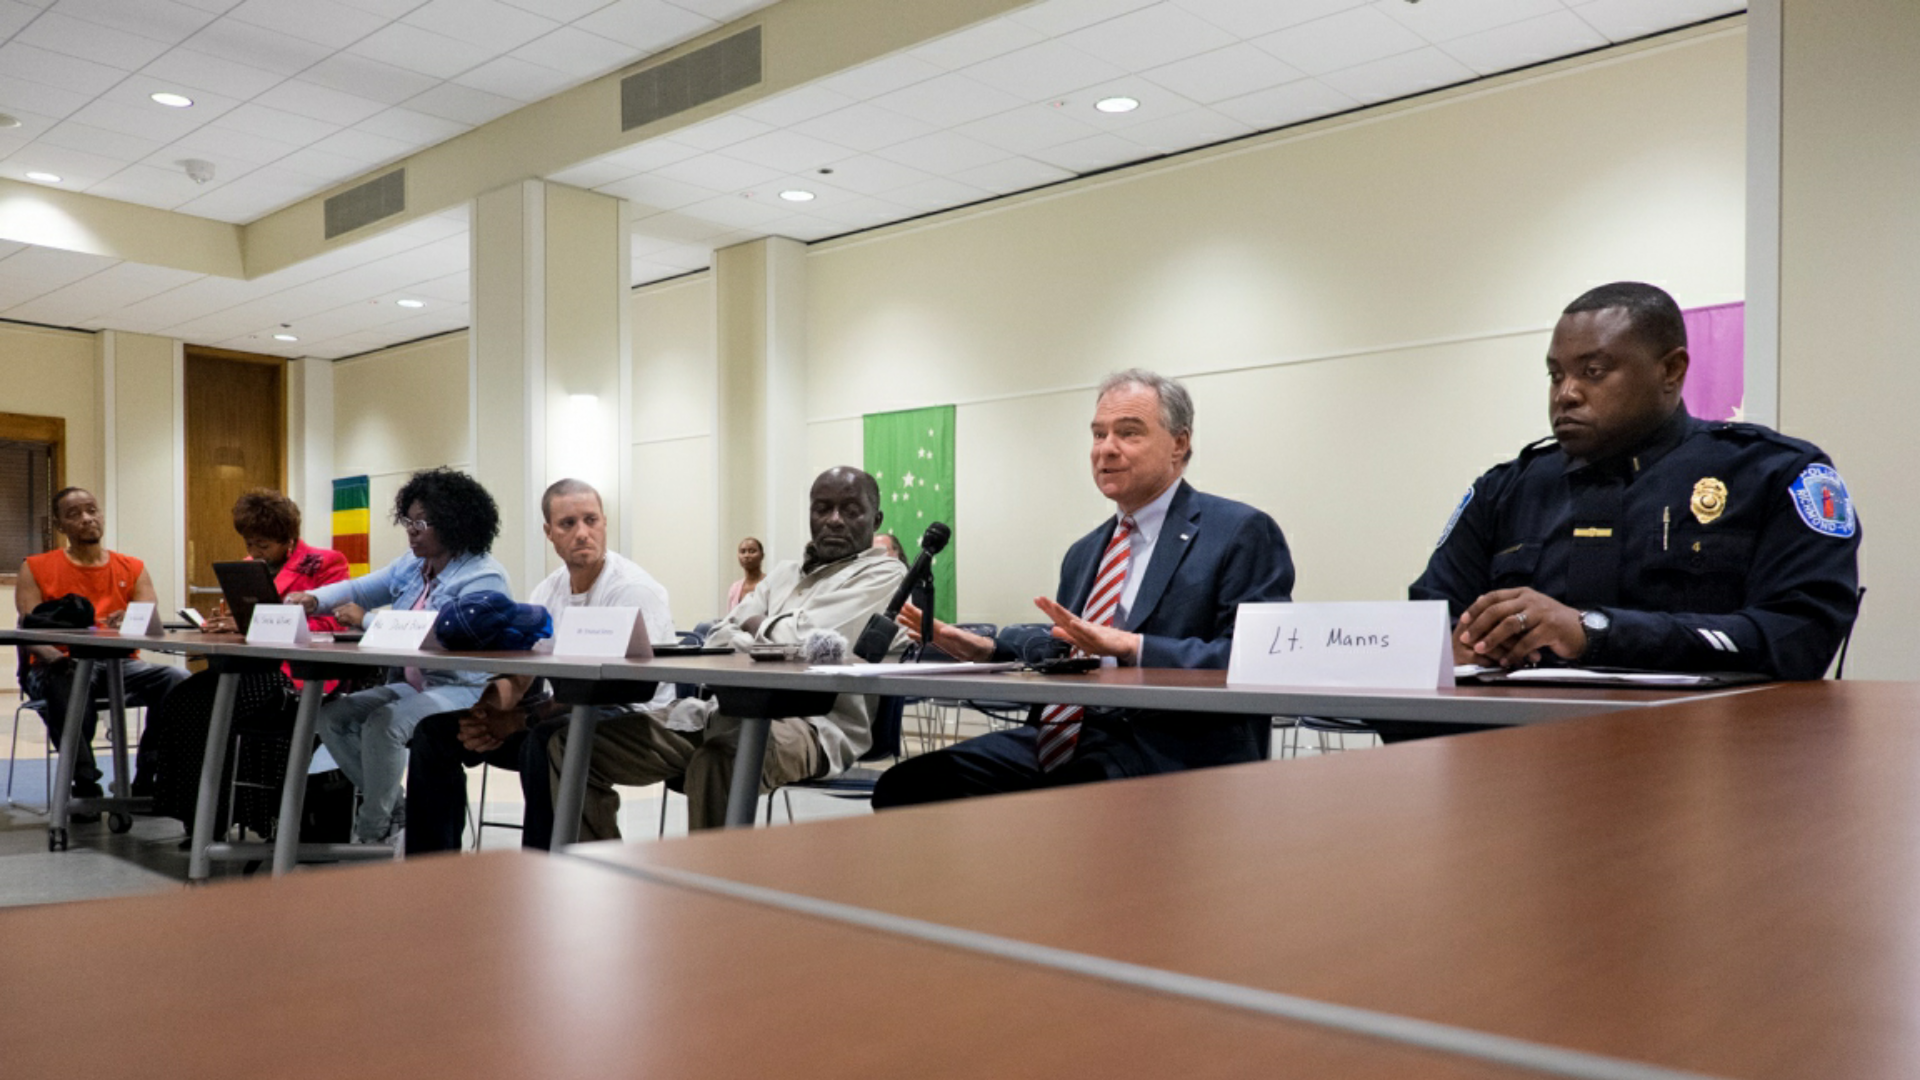 Criminal Justice Reform Roundtable Discussion